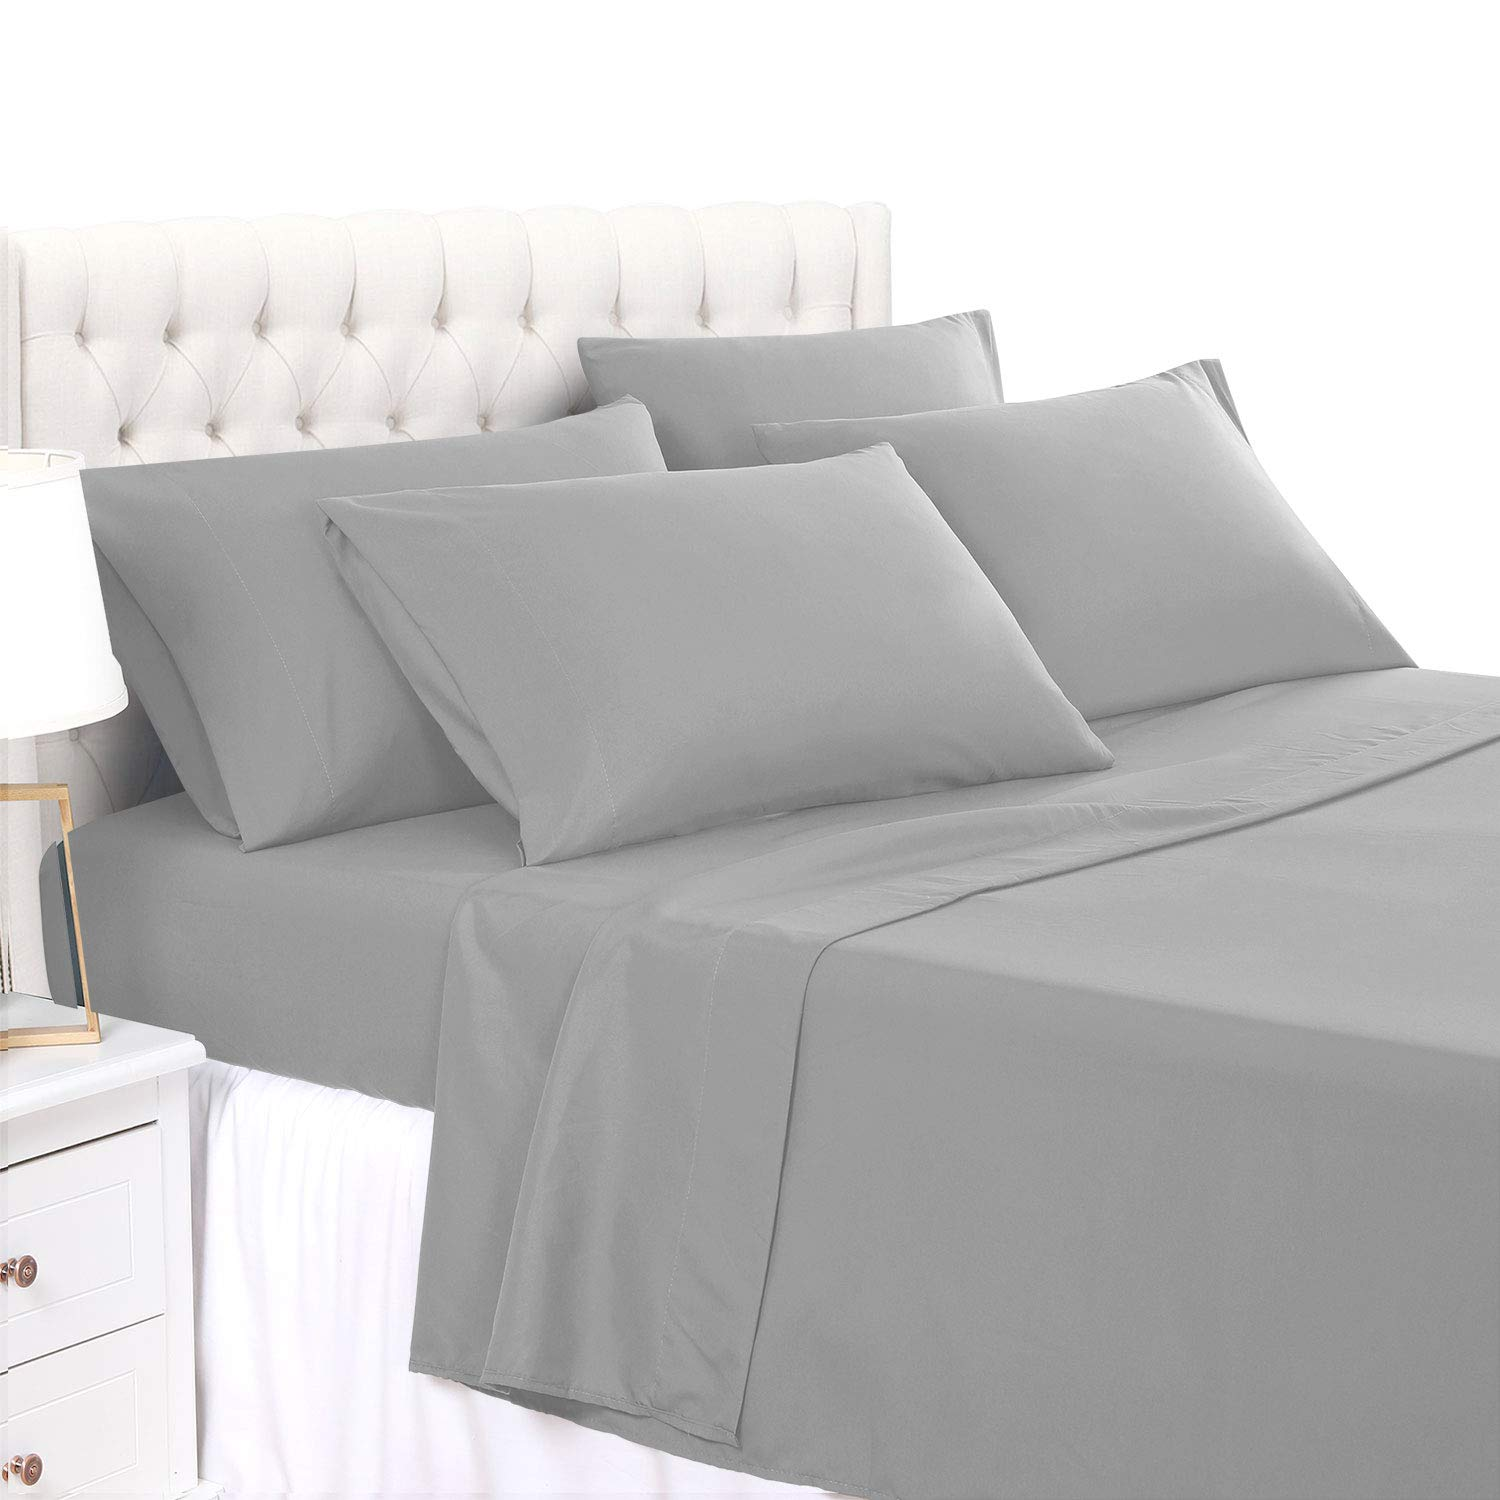 BASIC CHOICE 6 Piece Sheet Set - Soft 2000 Series Wrinkle & Fade Resistant Bed Sheets - Queen, Charcoal